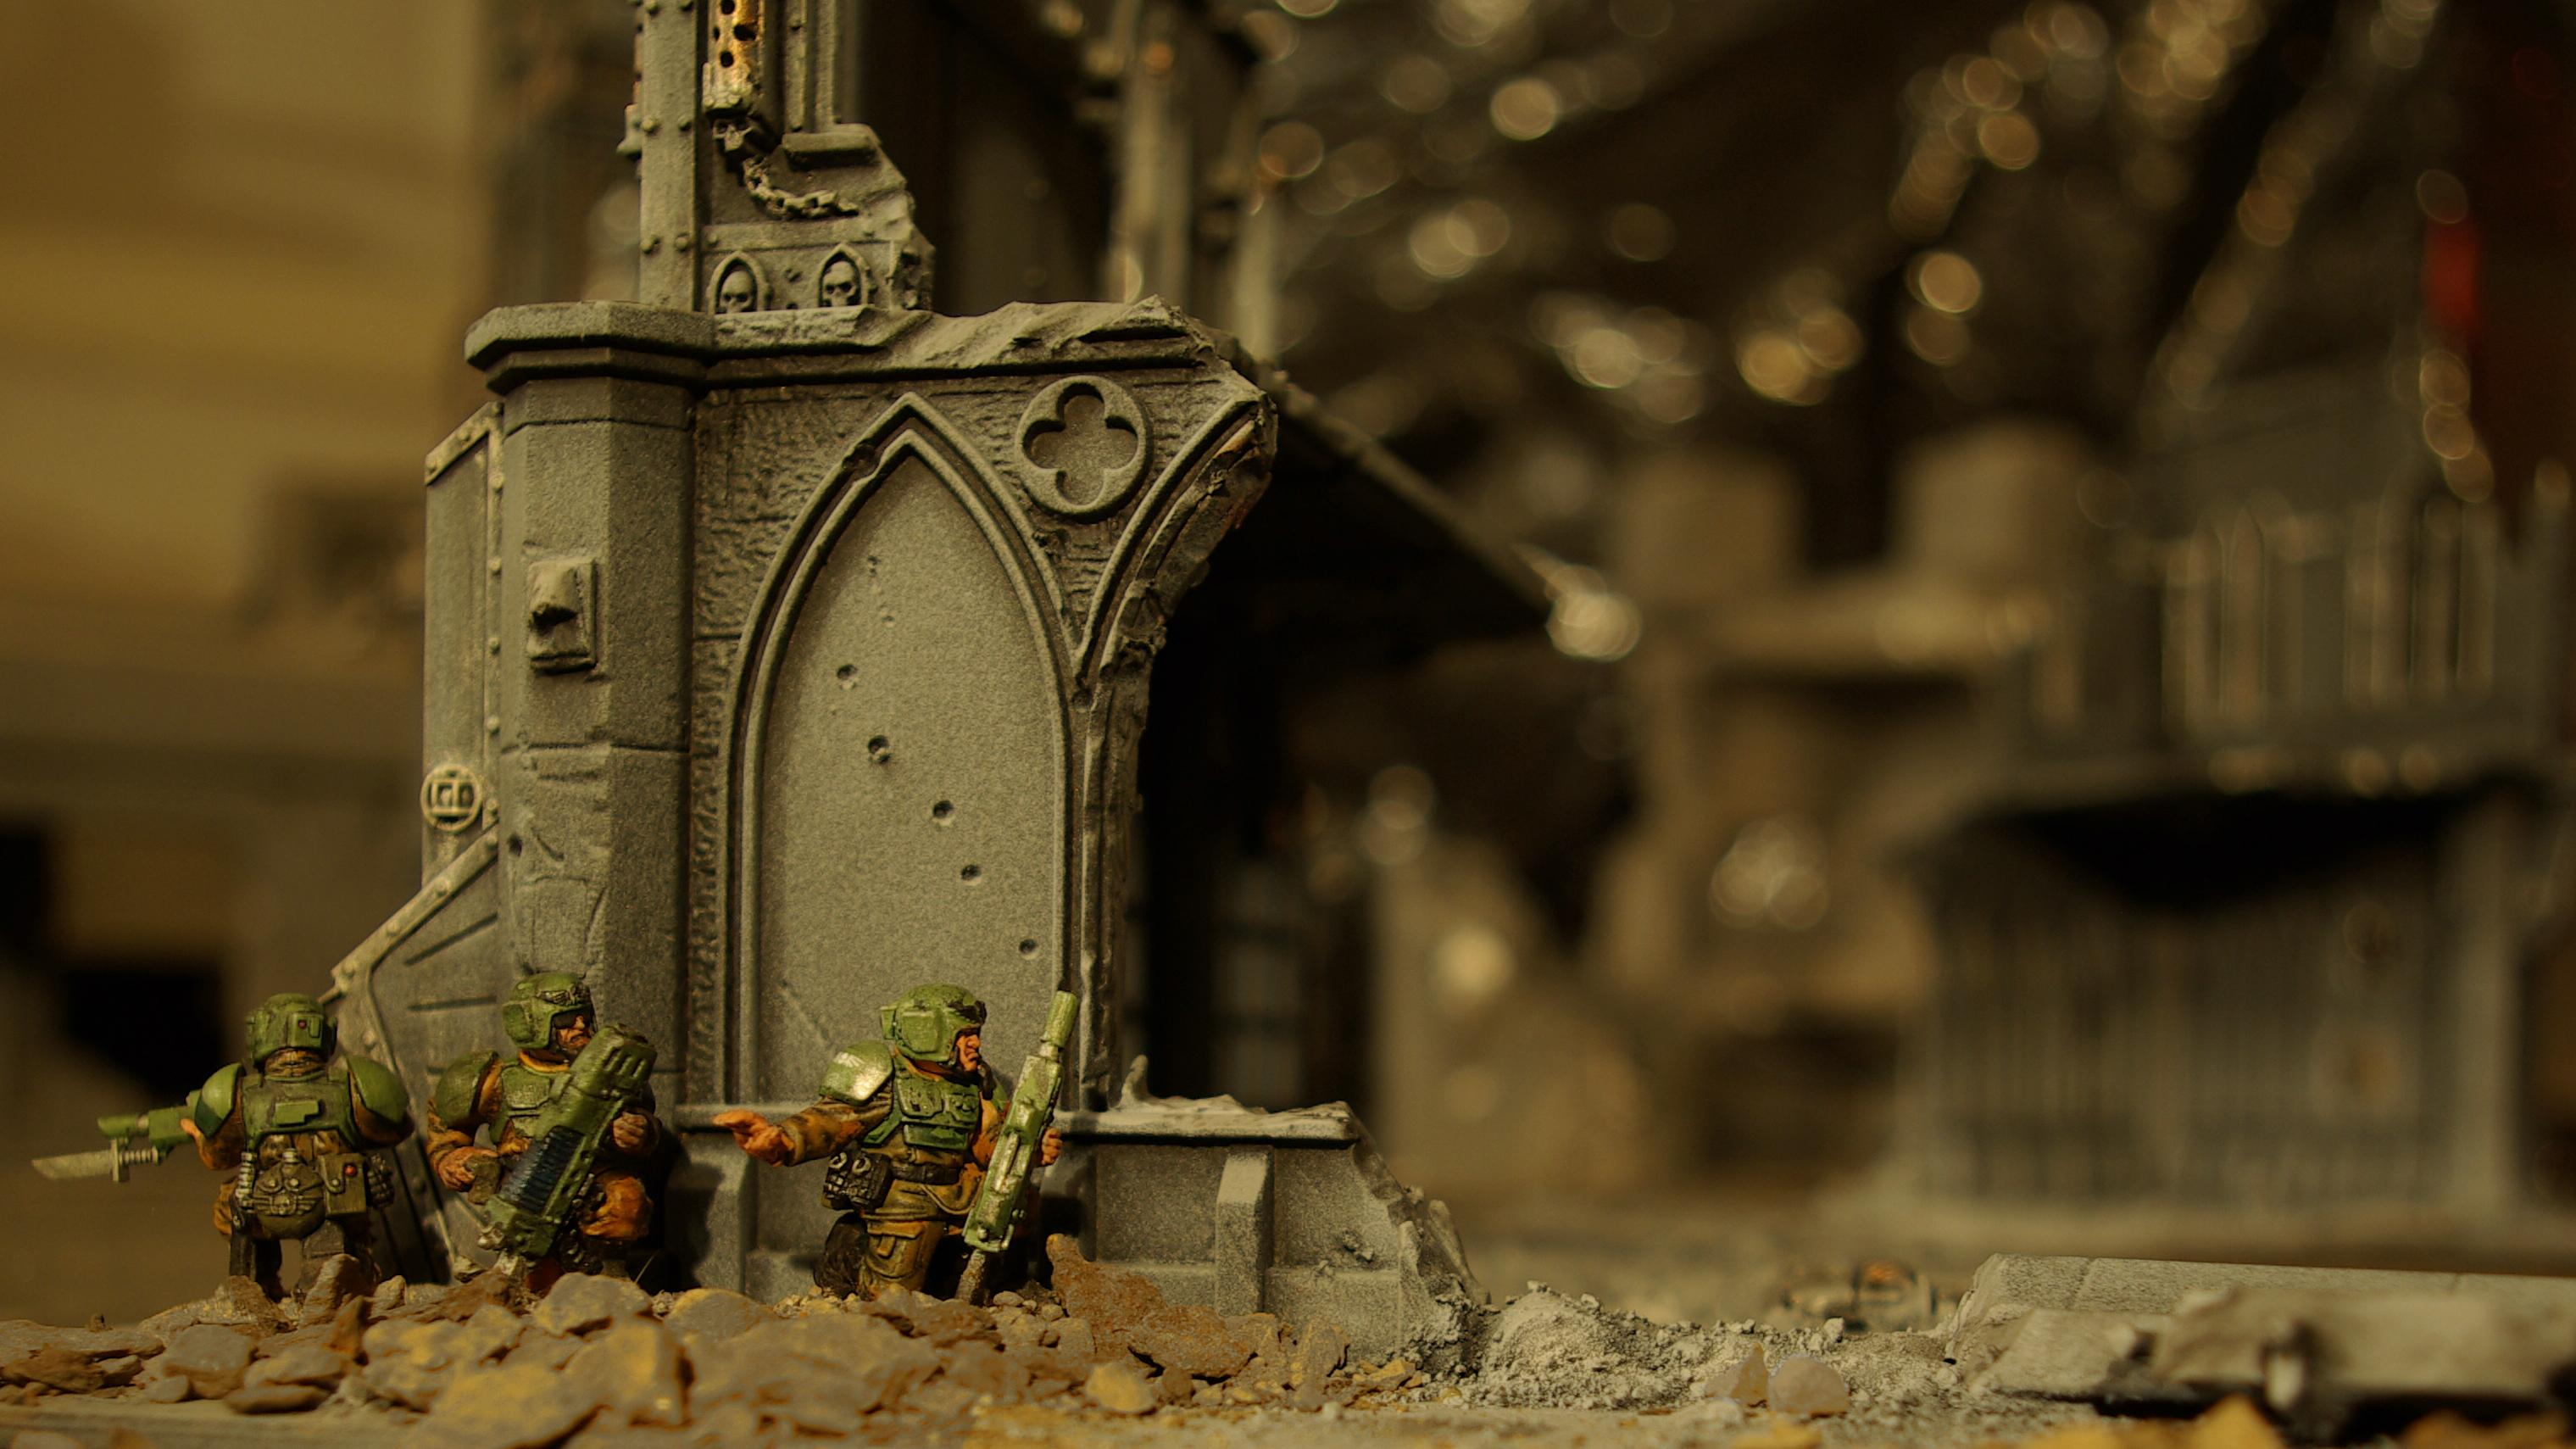 Action, Awesome, Cities Of Death, Imperial Guard, Warhammer 40,000